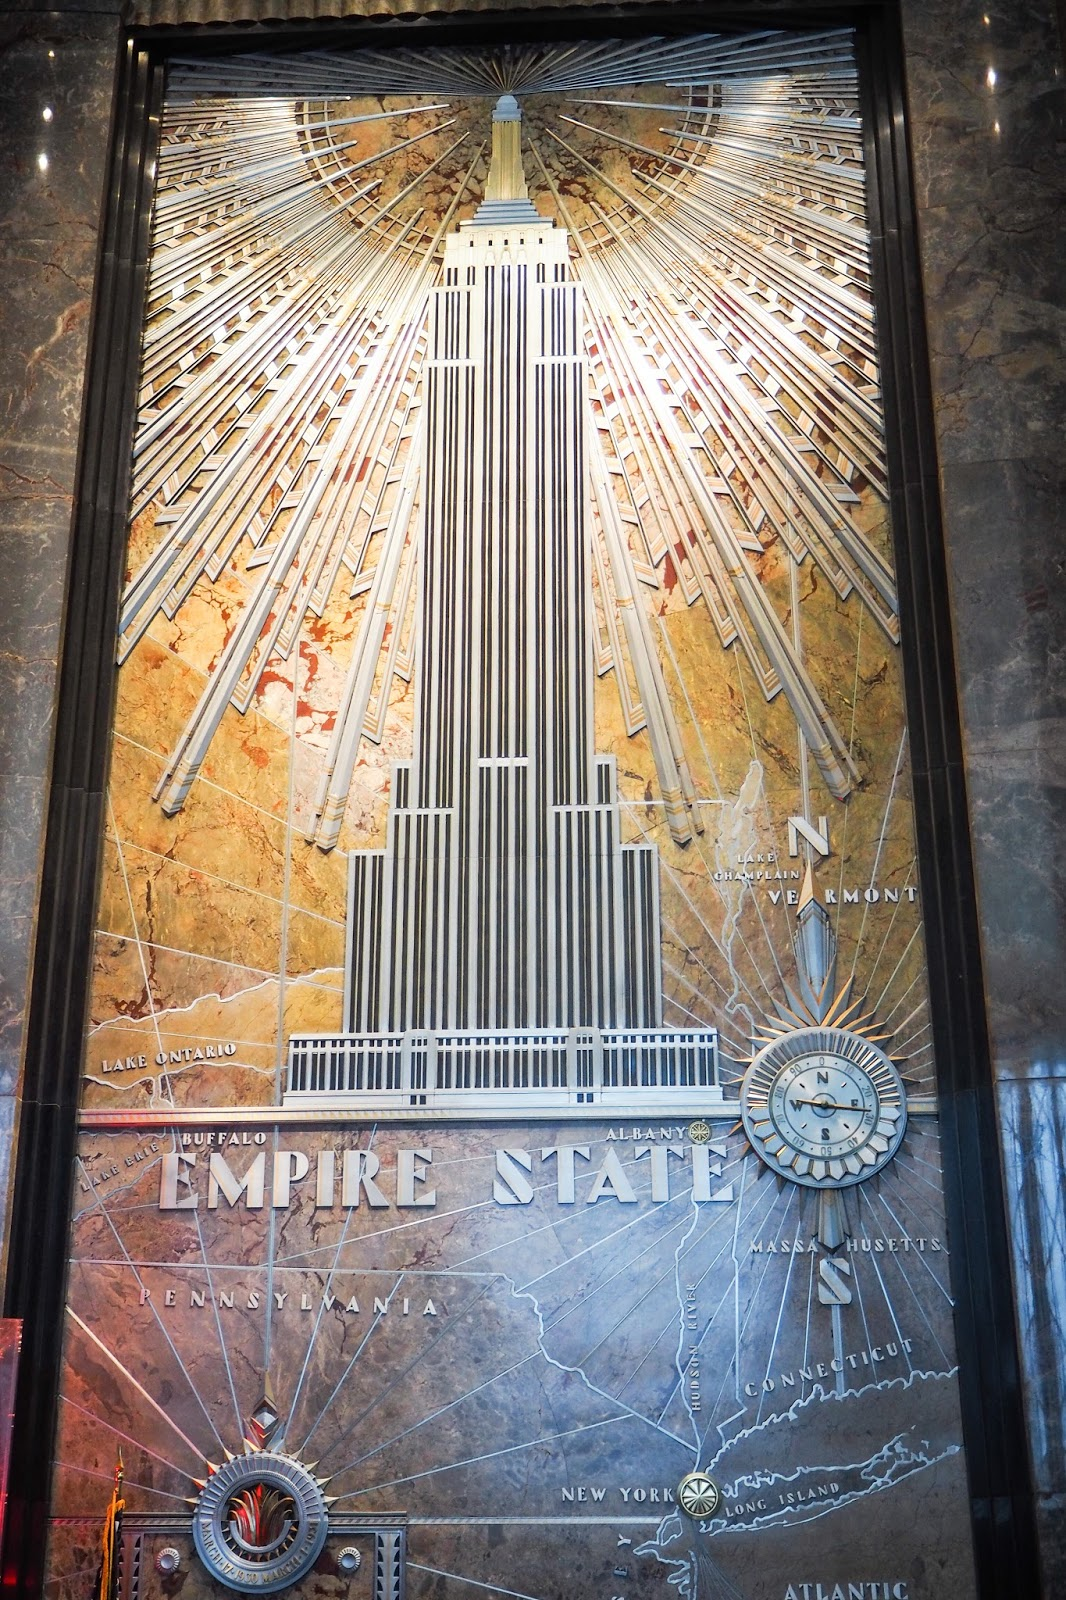 The inside of the Empire State Building